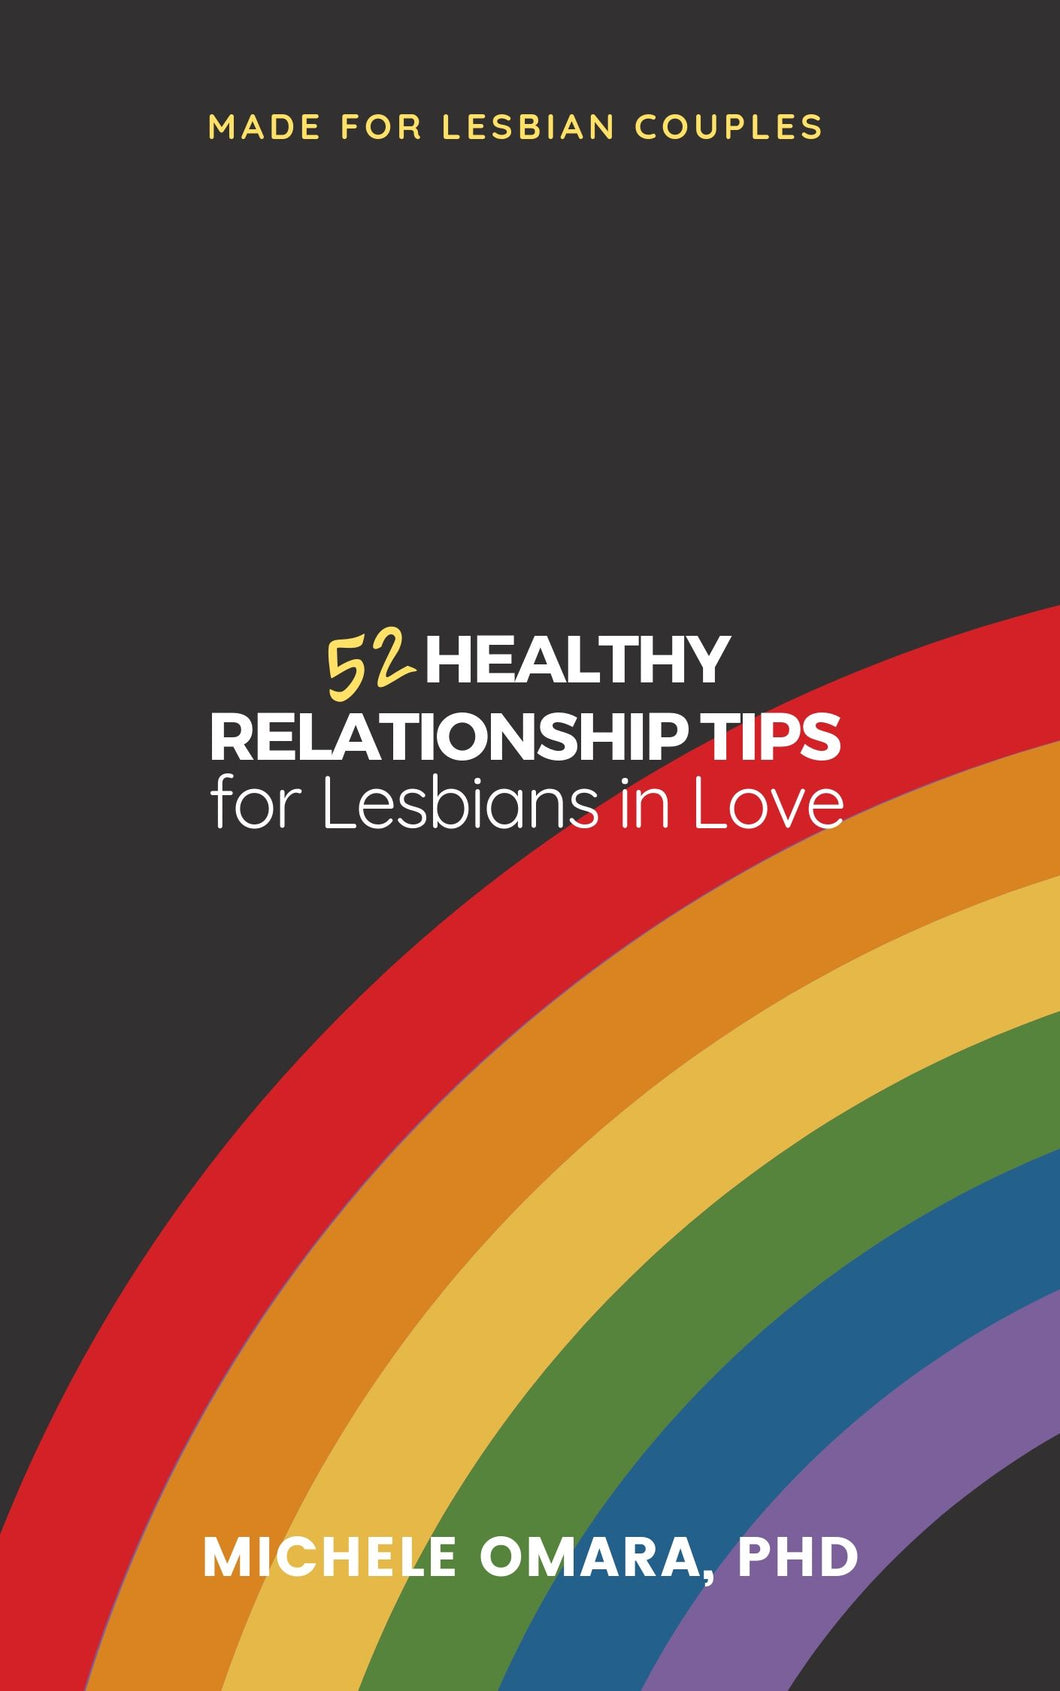 lesbian couples, lesbian issue, lgbt therapist near me, lesbian counselor, healthy relationship